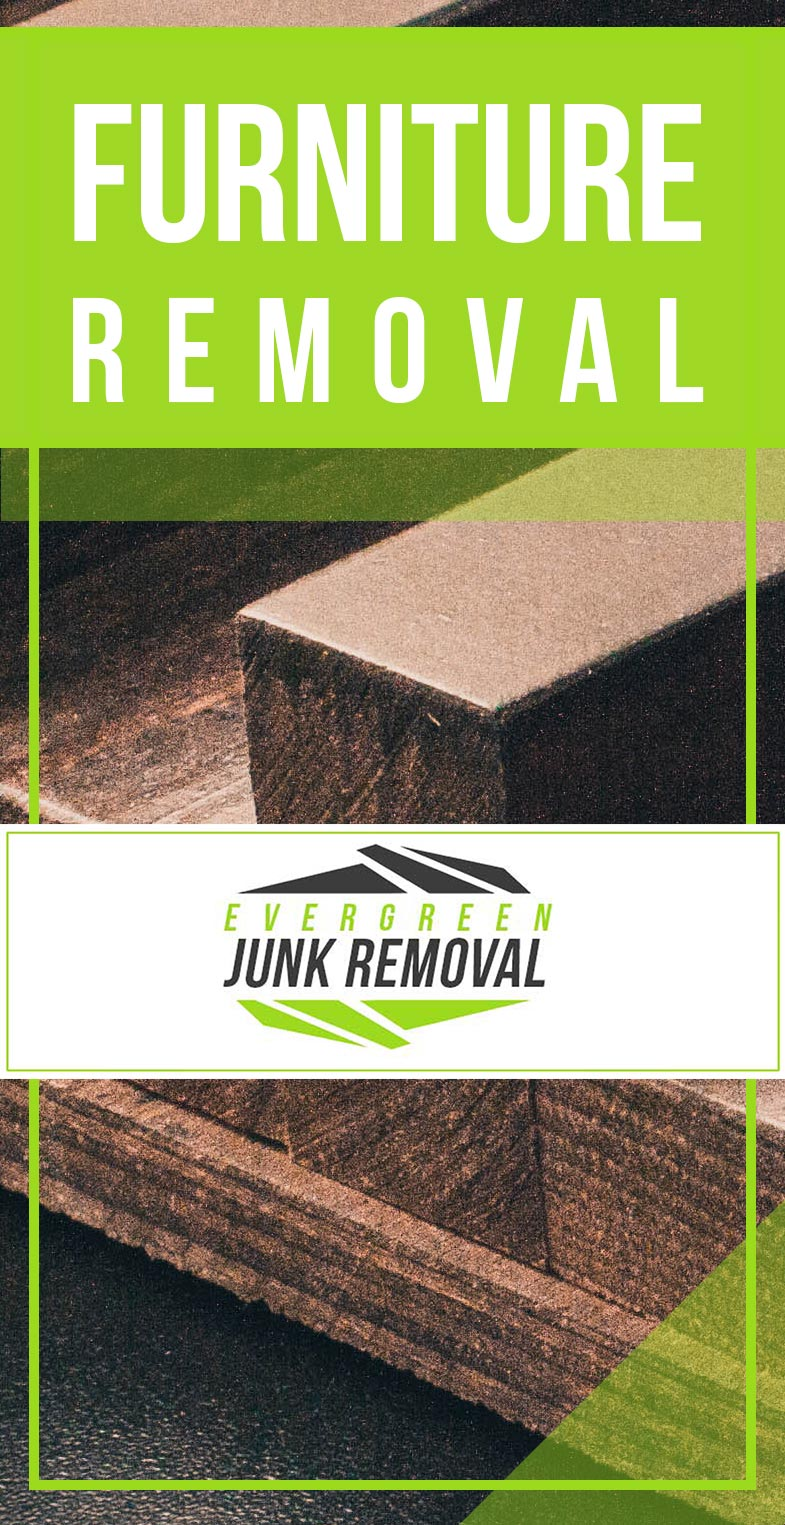 Junk Removal Palm Beach Gardens Furniture Removal